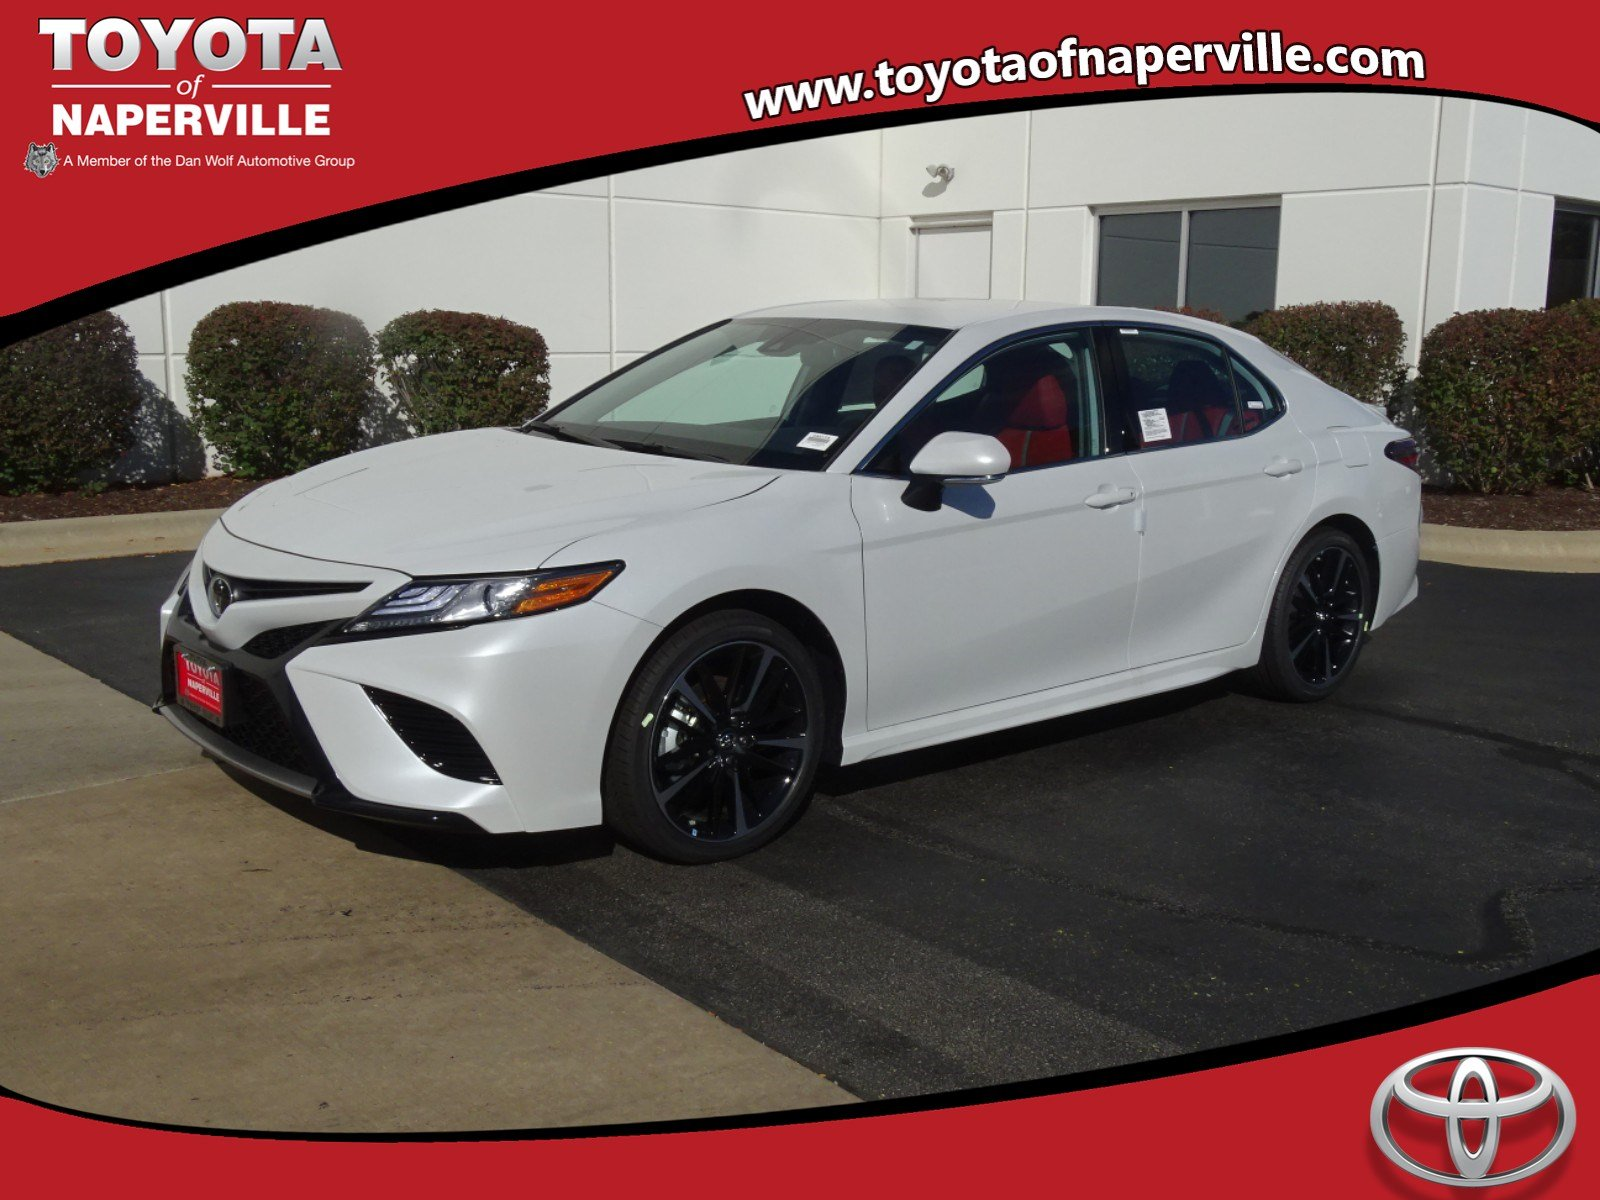 New 2019 Toyota Camry Xse 4d Sedan In Naperville C32173 Toyota Of